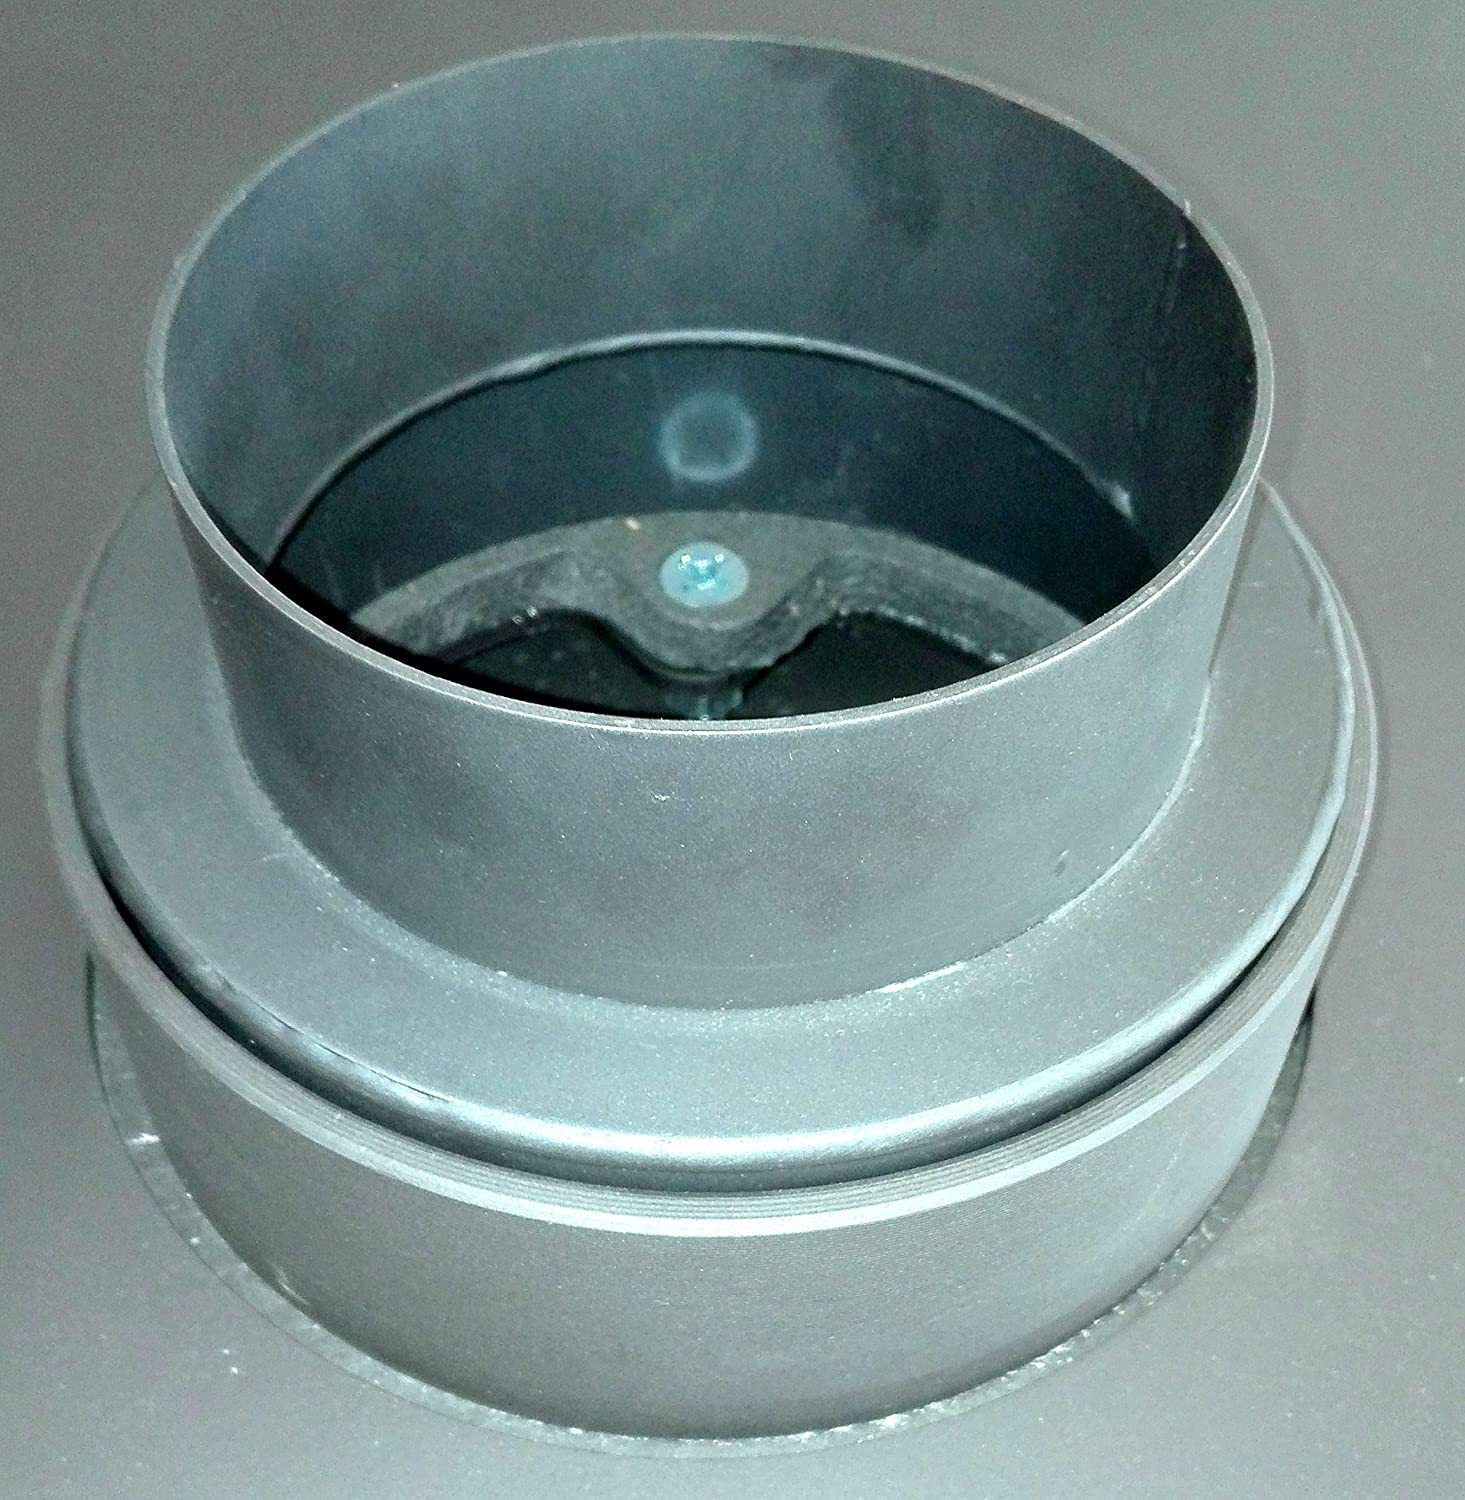 Duratherm Reducer to 120 Stove Flue Pipe /Ø 150mm 1,8mm Thickness Steel Gray Matt Approx. 6